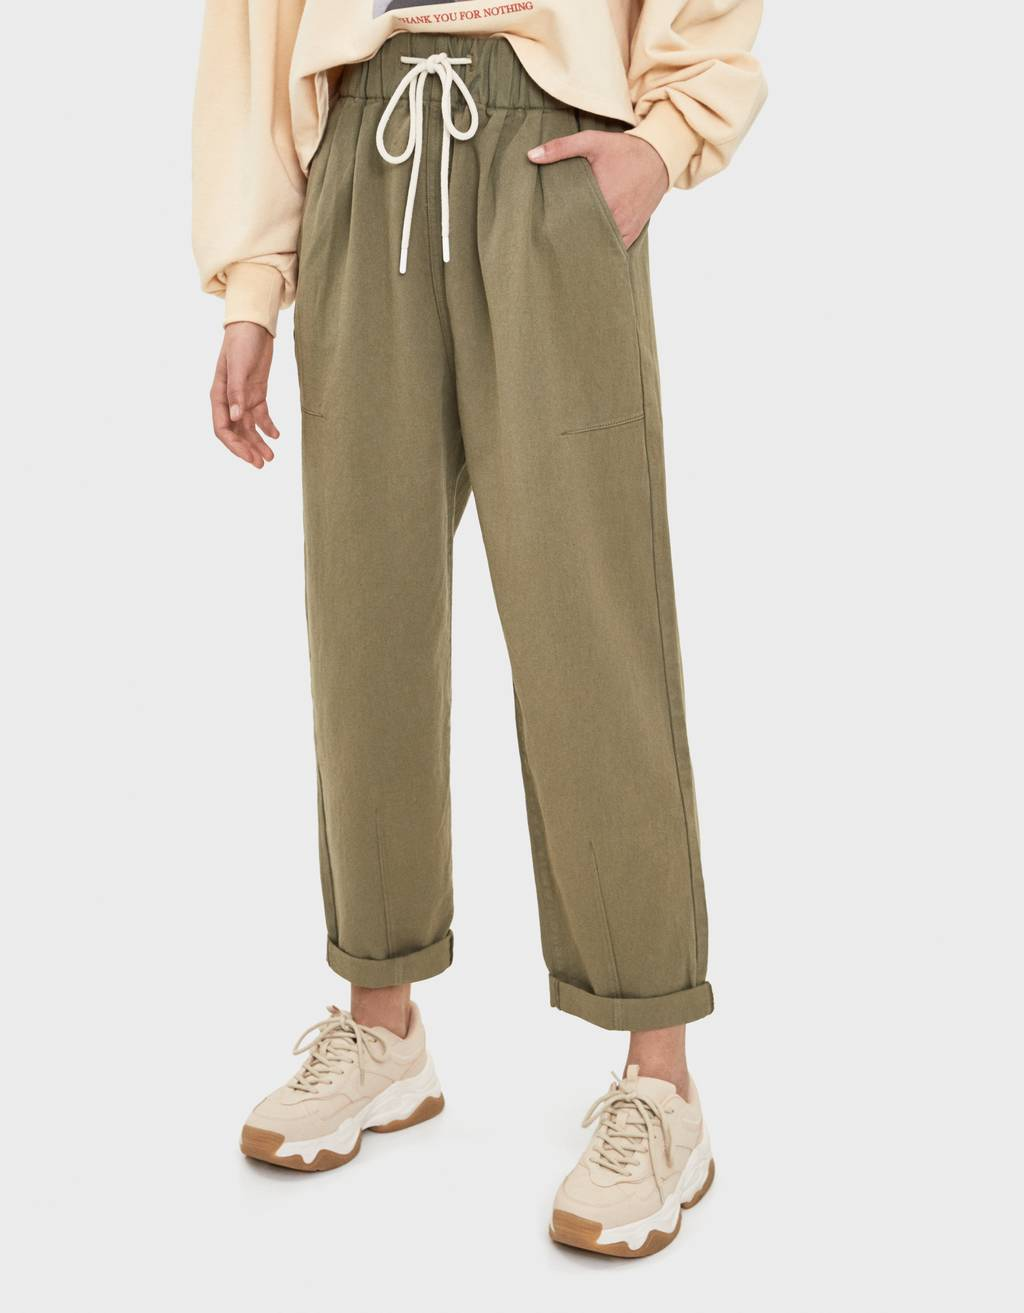 Balloon fit sweatpant jeans